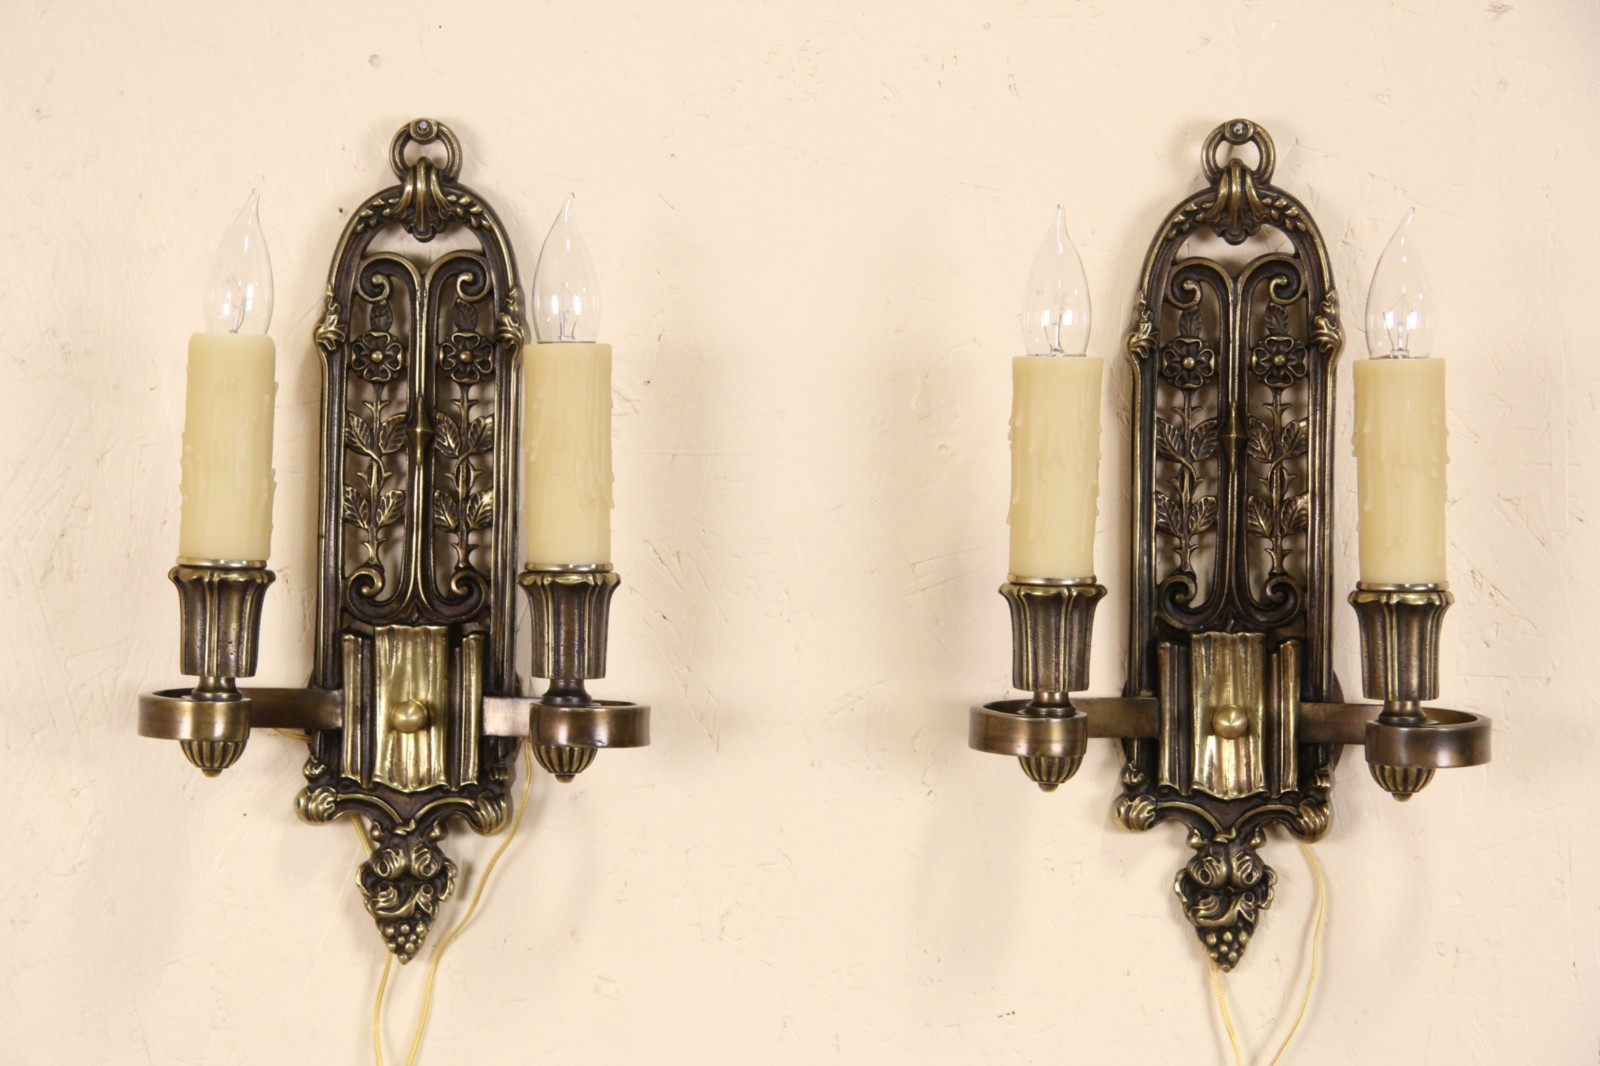 Bronze Wall Sconces For Candles : SOLD - Pair of Bronze Vintage Double Wall Sconces or Lights, Beeswax Candles - Harp Gallery ...